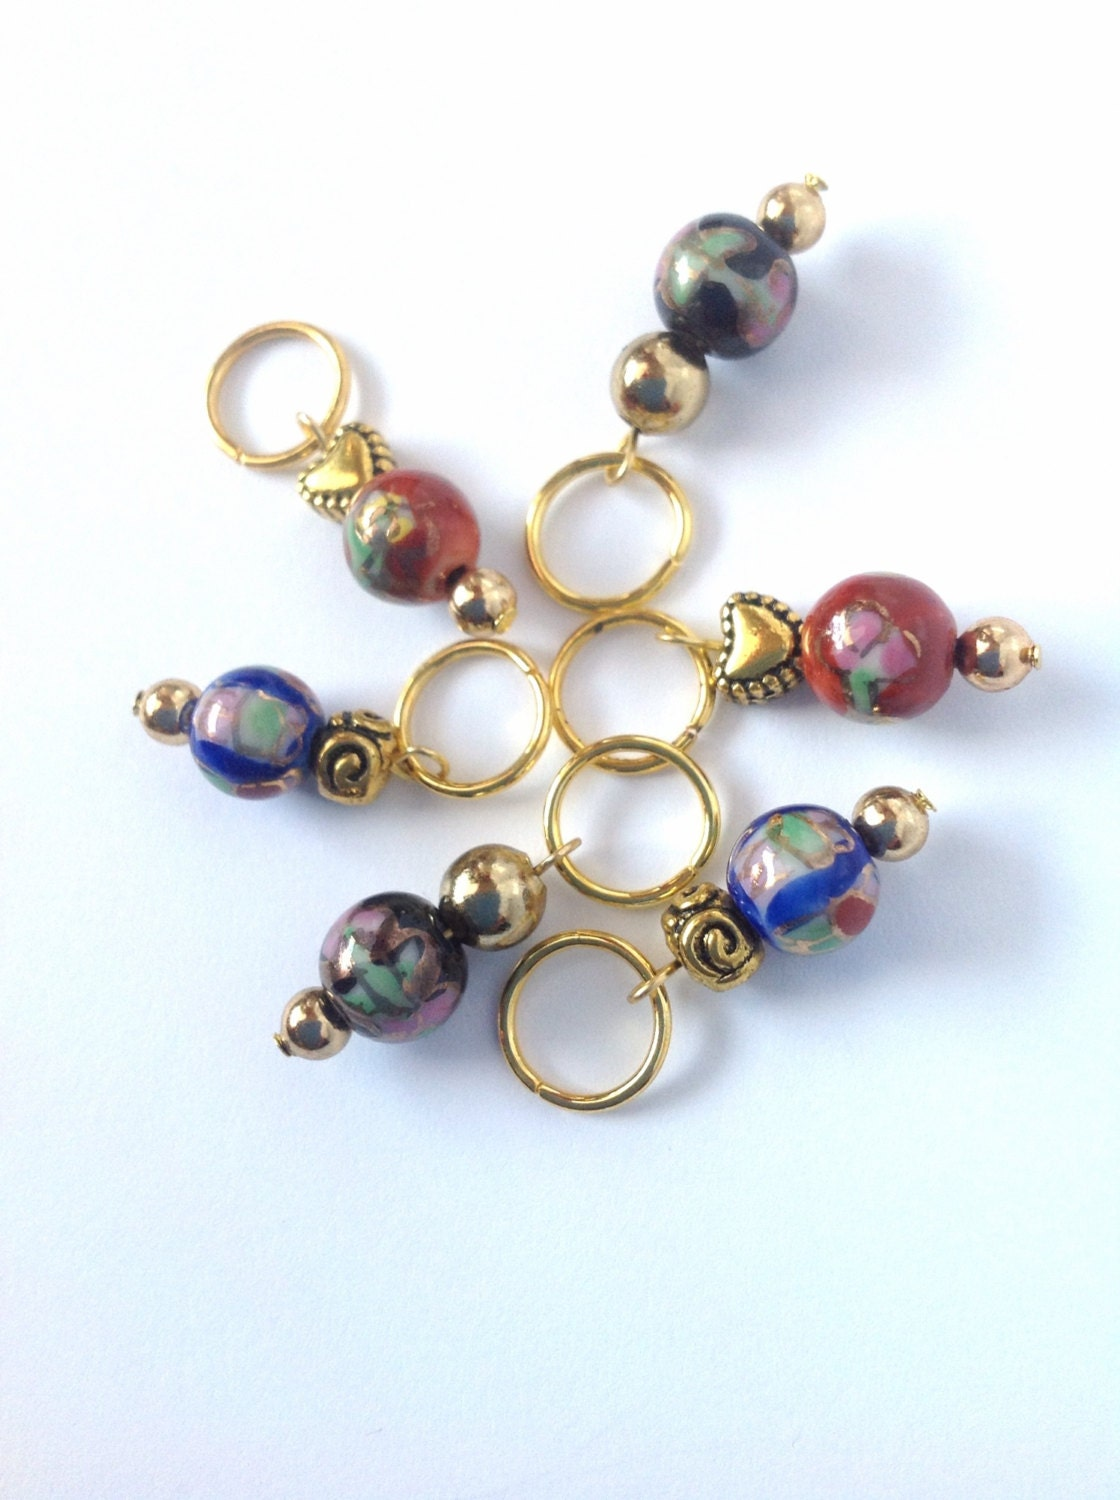 Decorative Knitting Stitch Markers : Red/blue/black/gold glass bead knitting stitch markers set